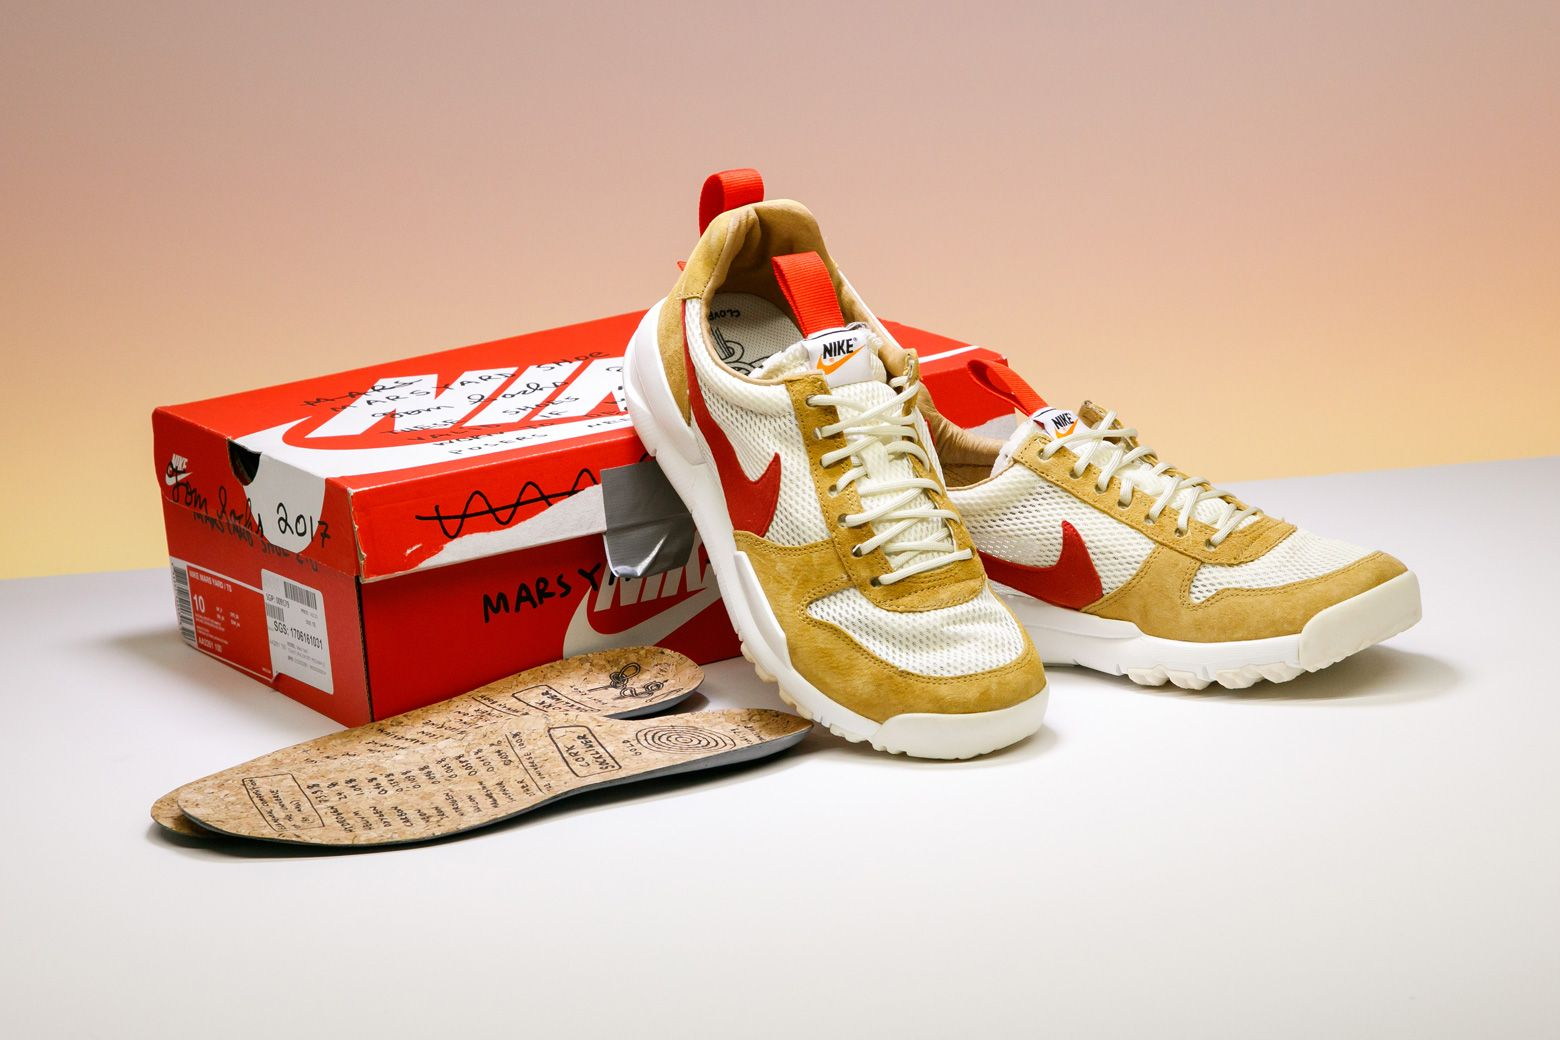 The Tom Sachs x Nike Mars Yard 2.0 model comes with two different insoles  in mesh and cork. 8e9de04b36